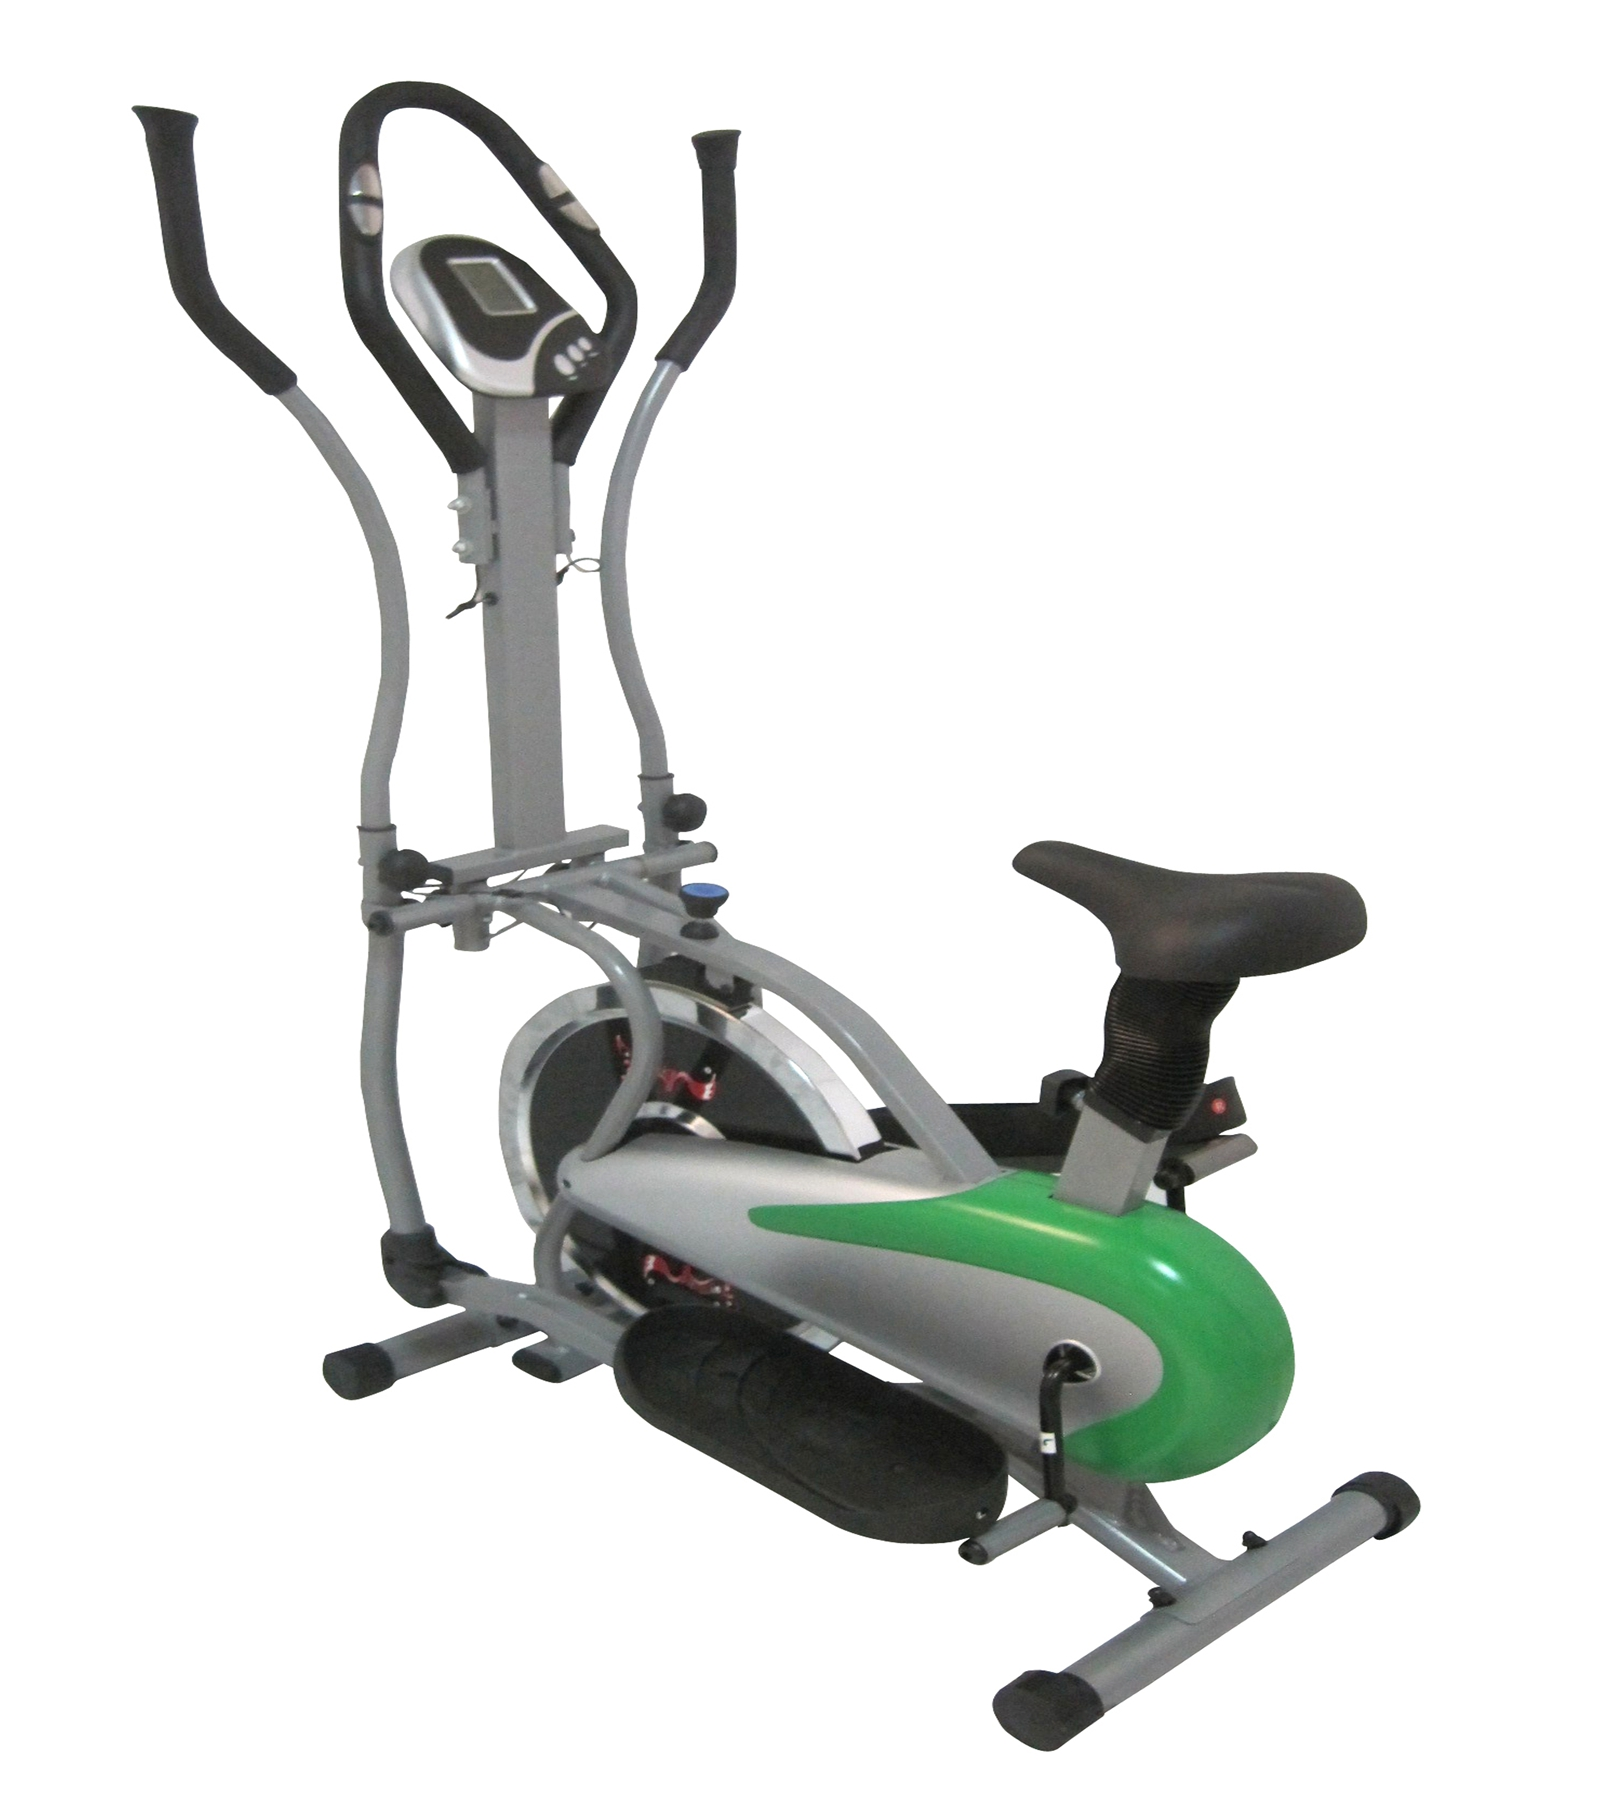 FoxHunter Elliptical Cross Trainer Exercise Bike Fitness